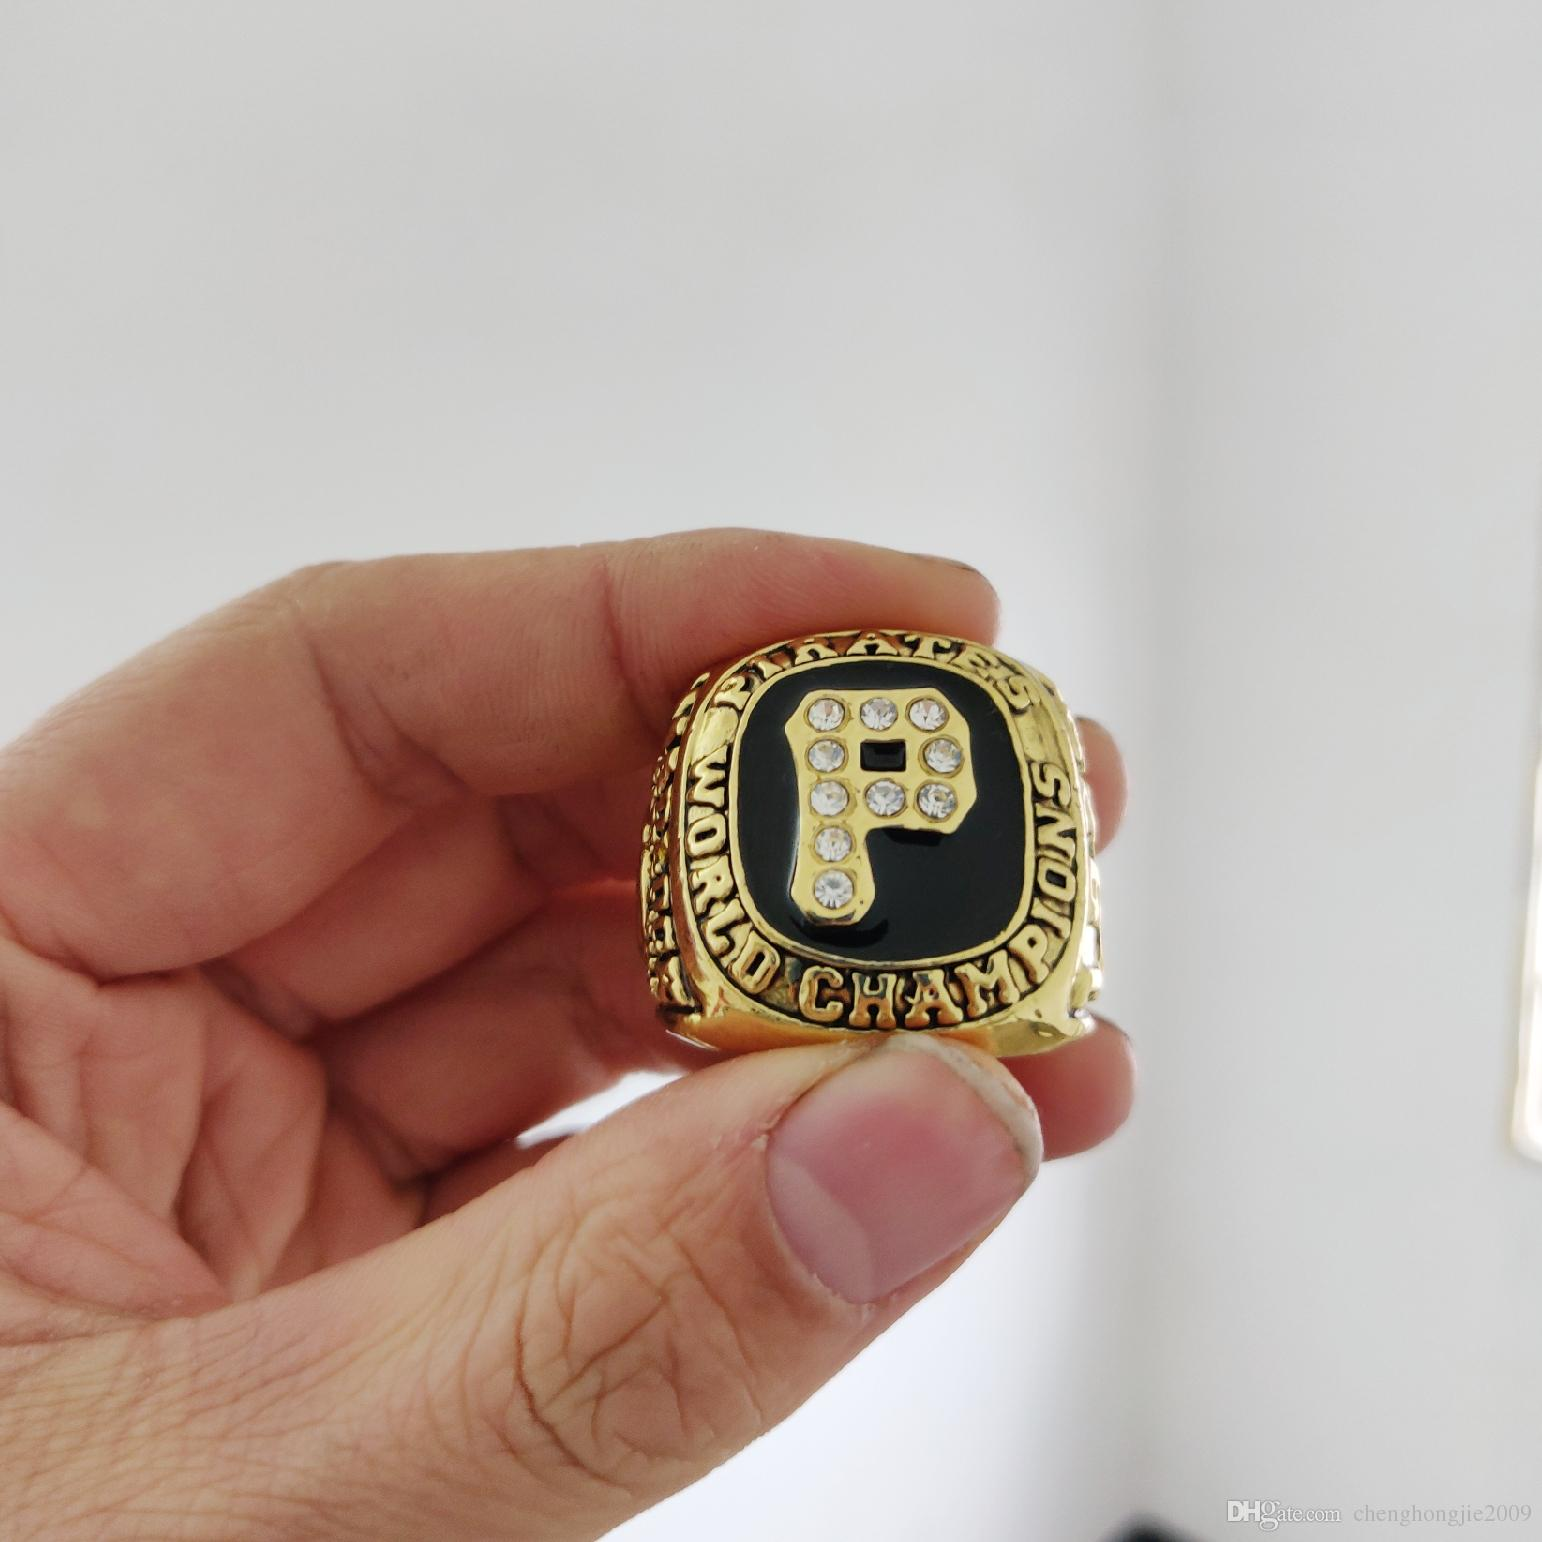 2019 wholesale Pittsburgh 1978-1979 Pirates World Championship Ring TideHoliday gifts for friends